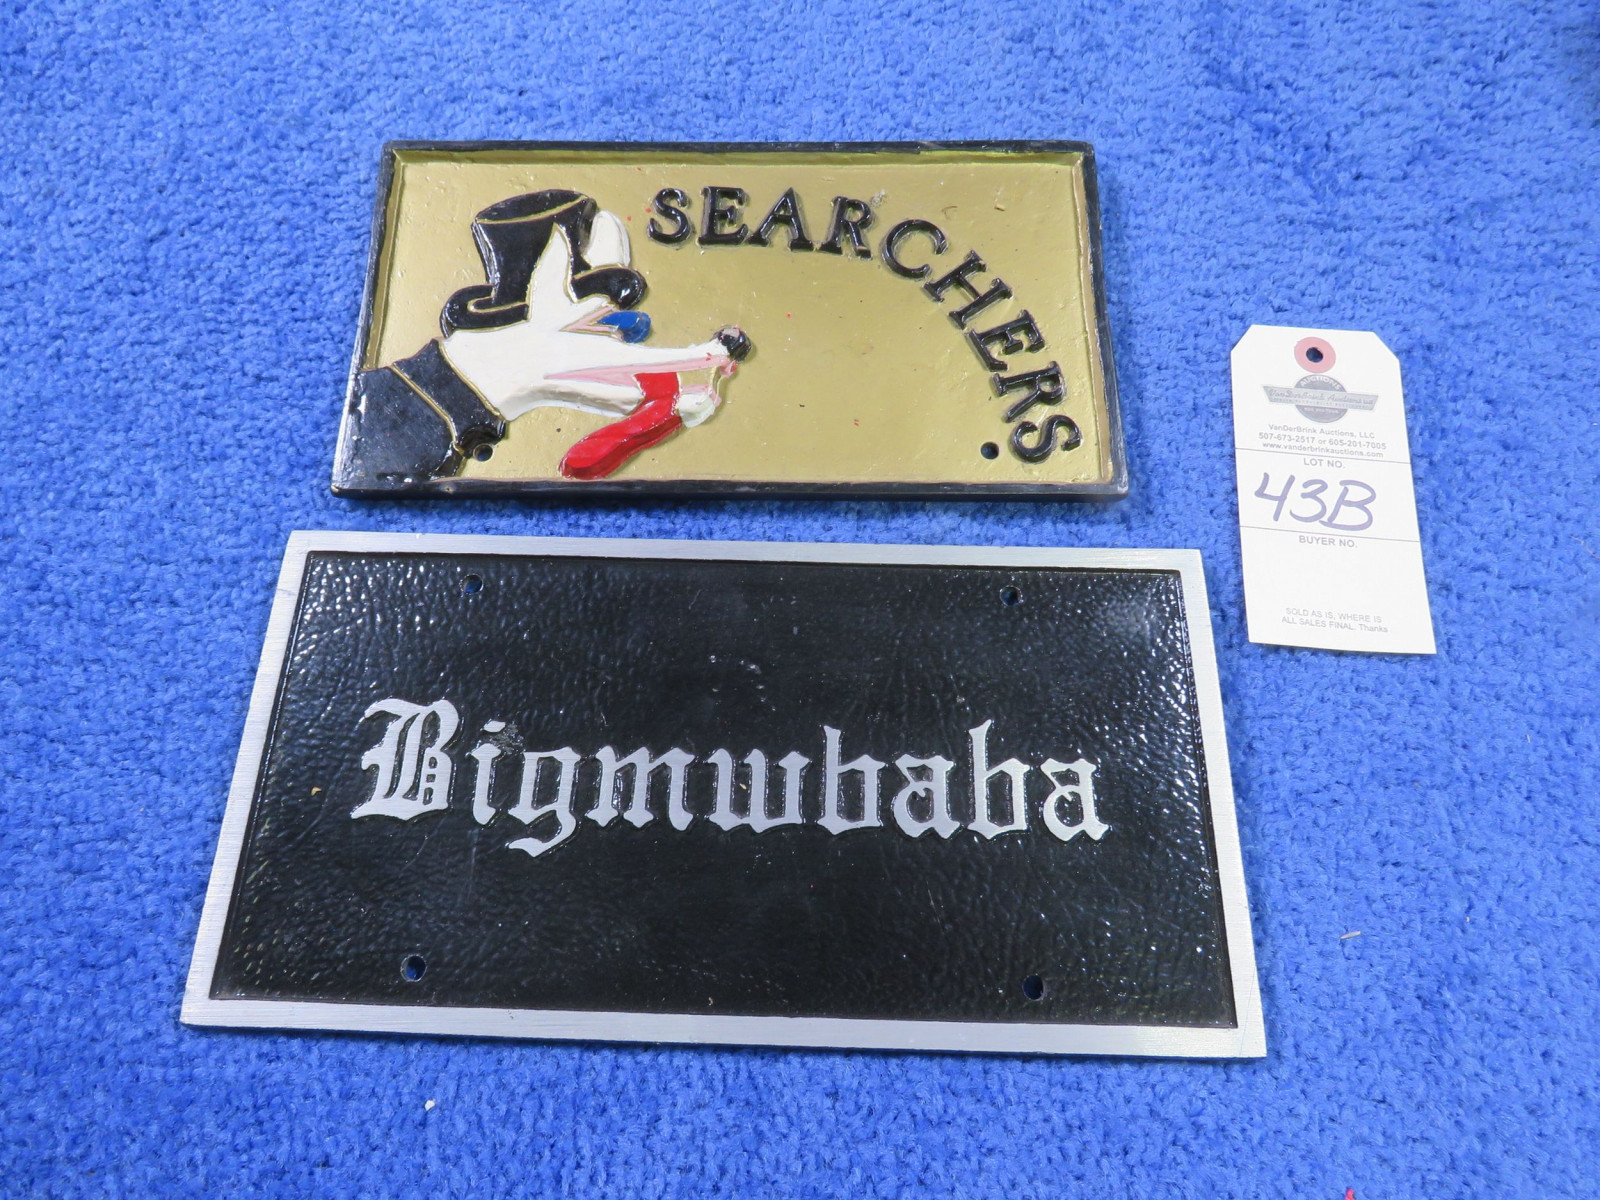 Searchers Vintage Vehicle Club Plates- Pot Metal - Image 1